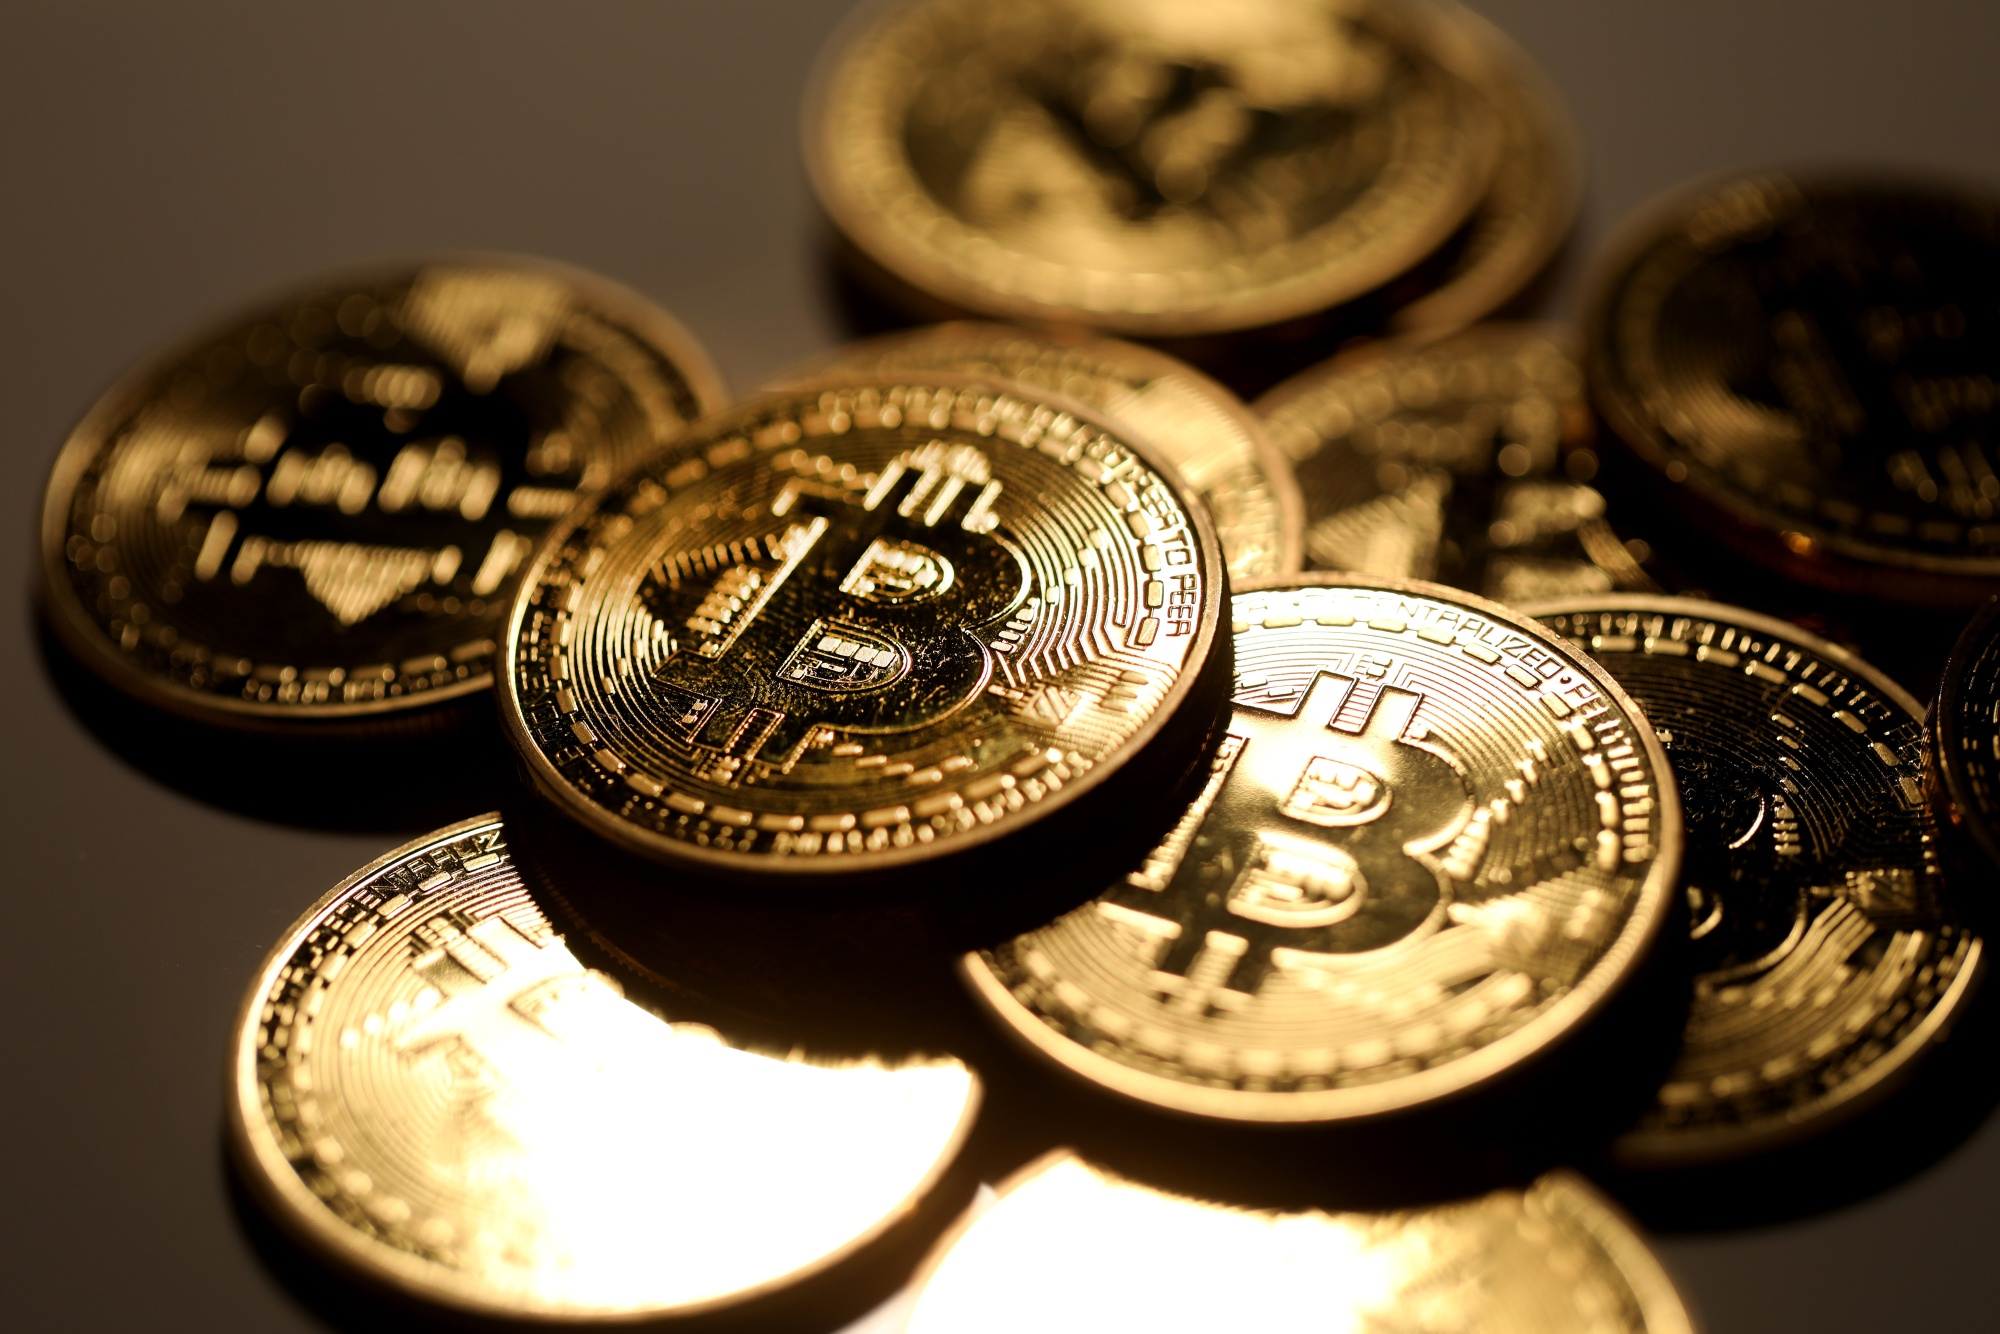 Bronze crypto currency exchange rates sporting betting champ